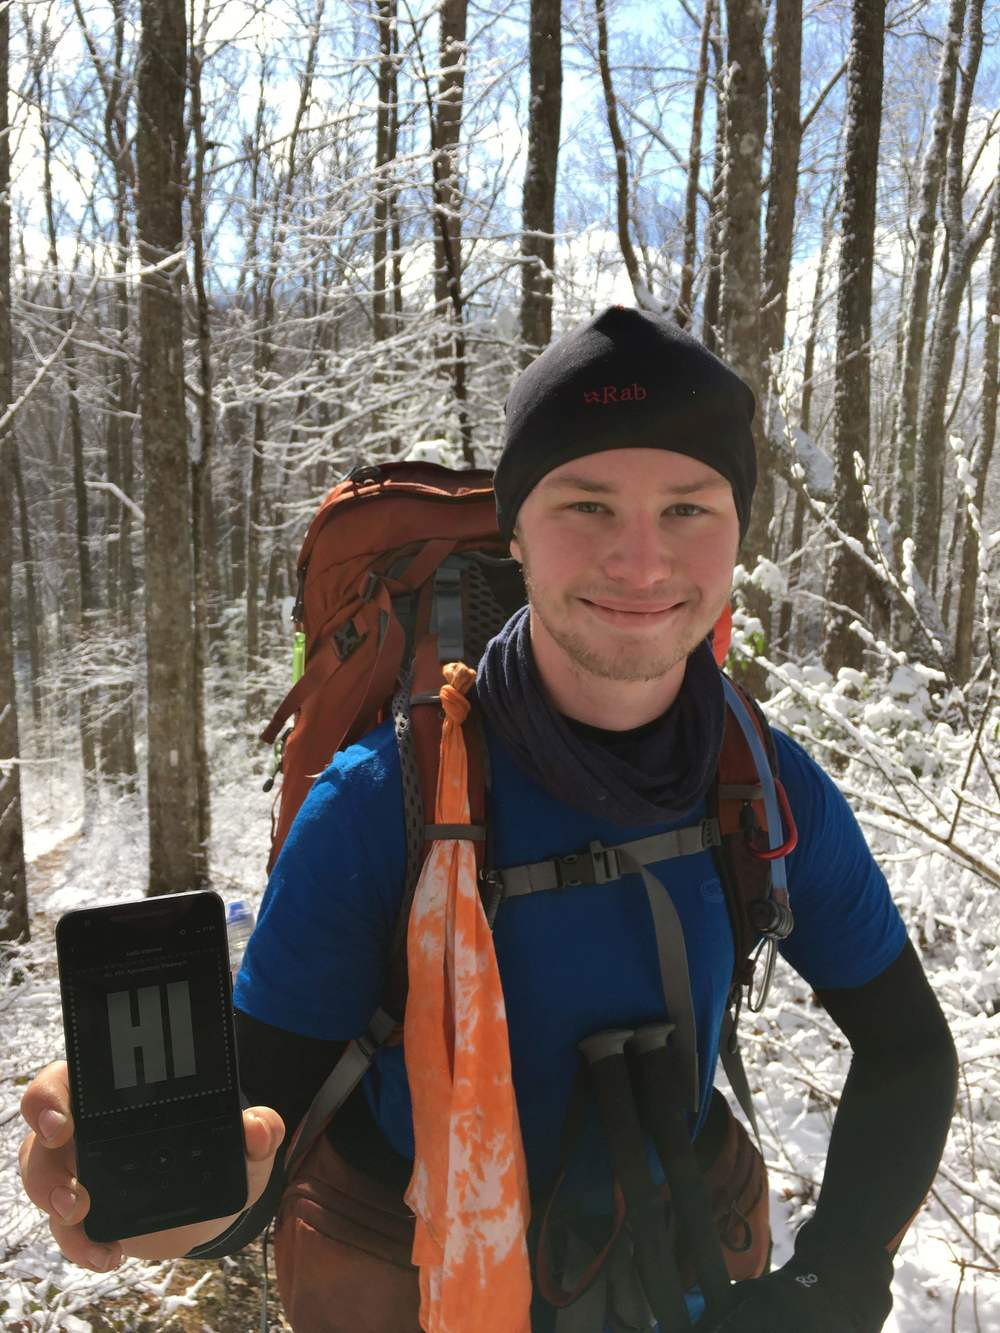 Chris on the Appalachian Trail